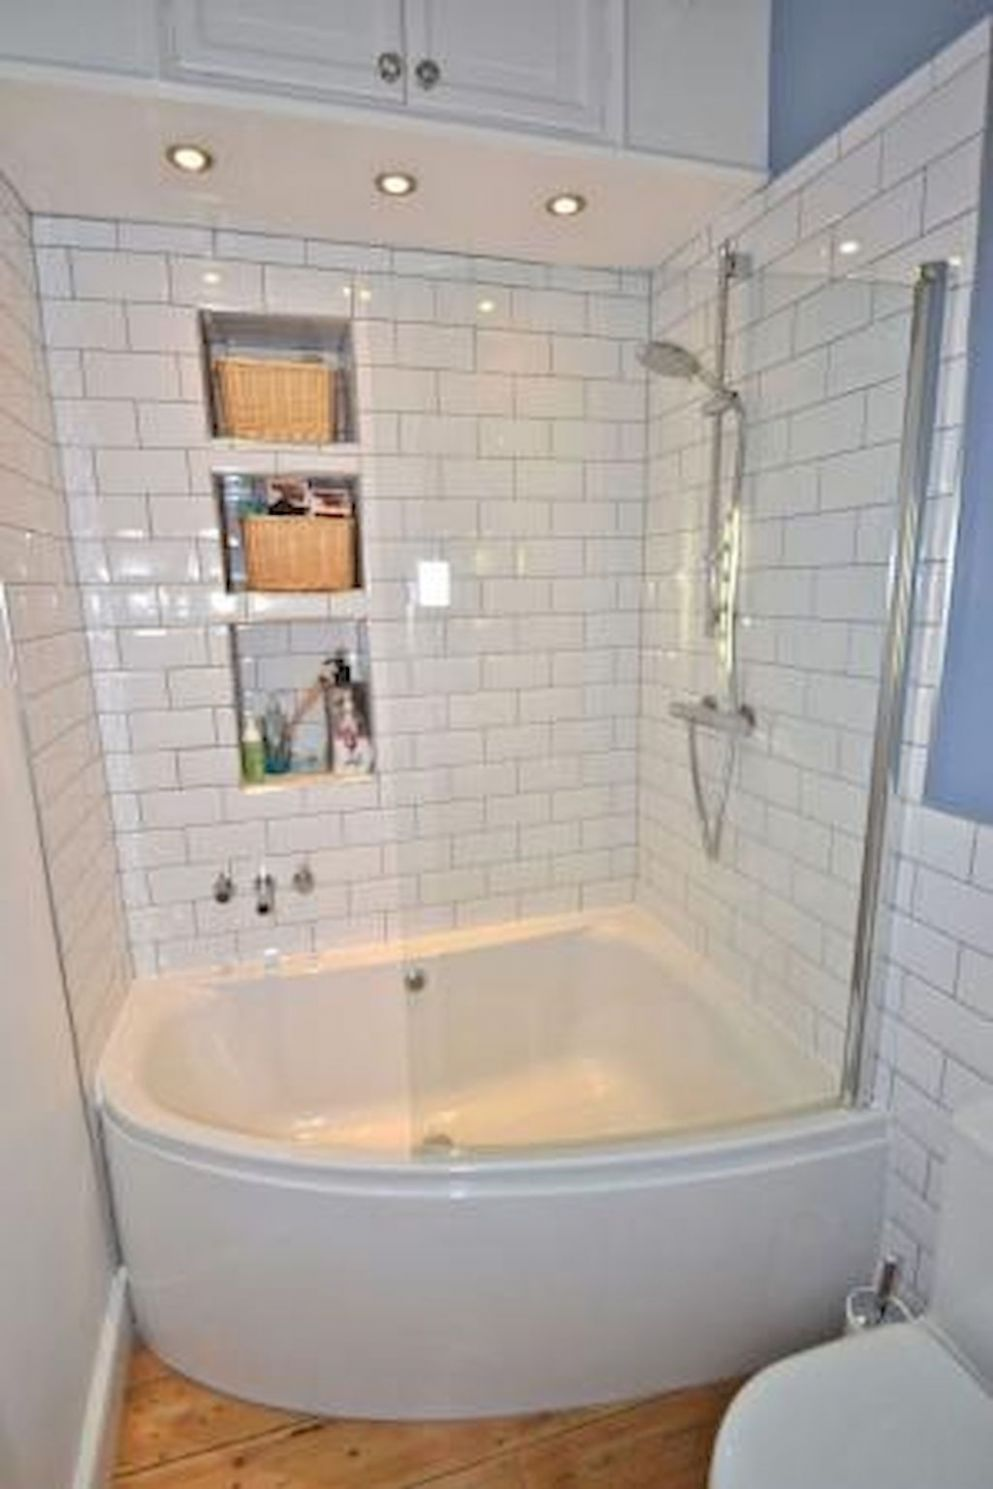 9 Small Bathroom Ideas Remodel (With images) | Bathroom tub ..